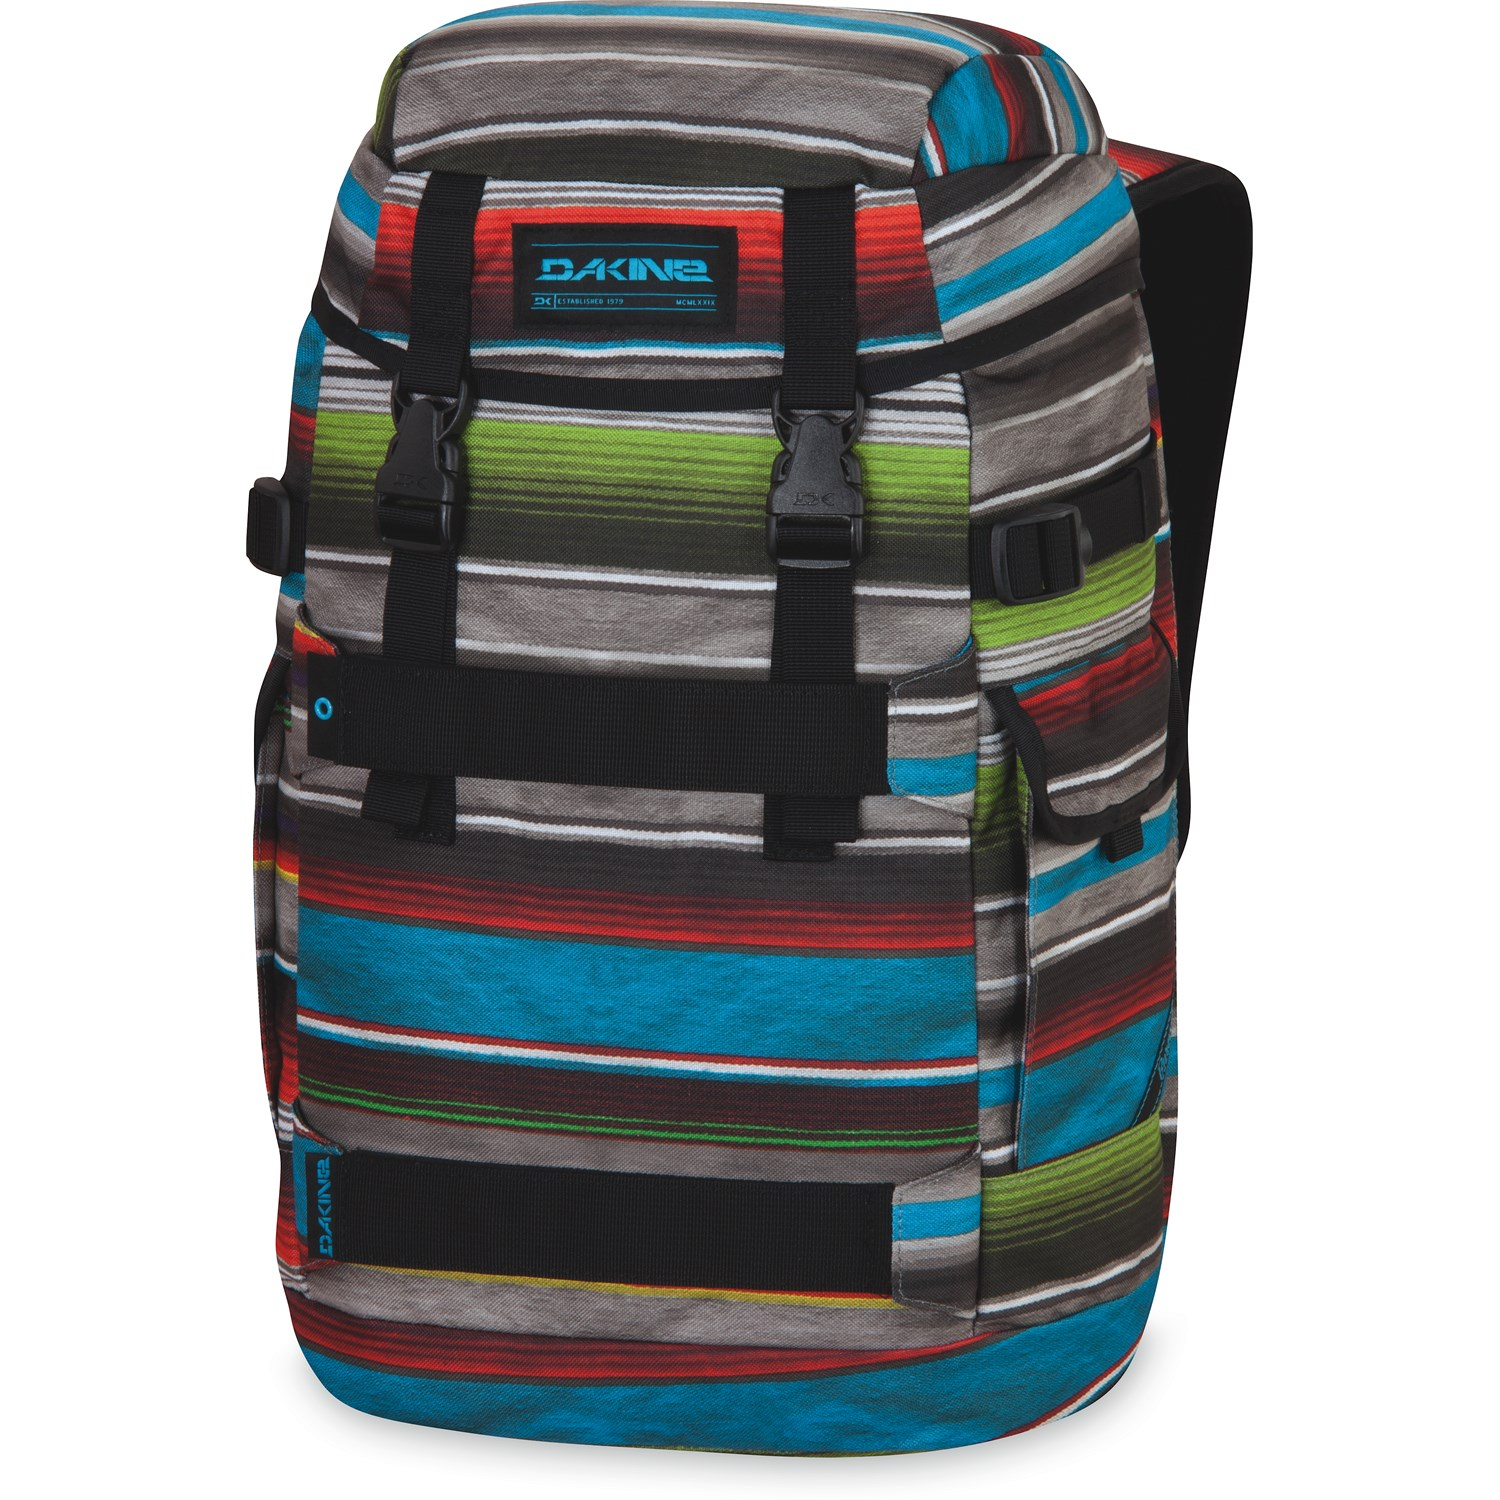 DaKine Burnside Backpack | evo